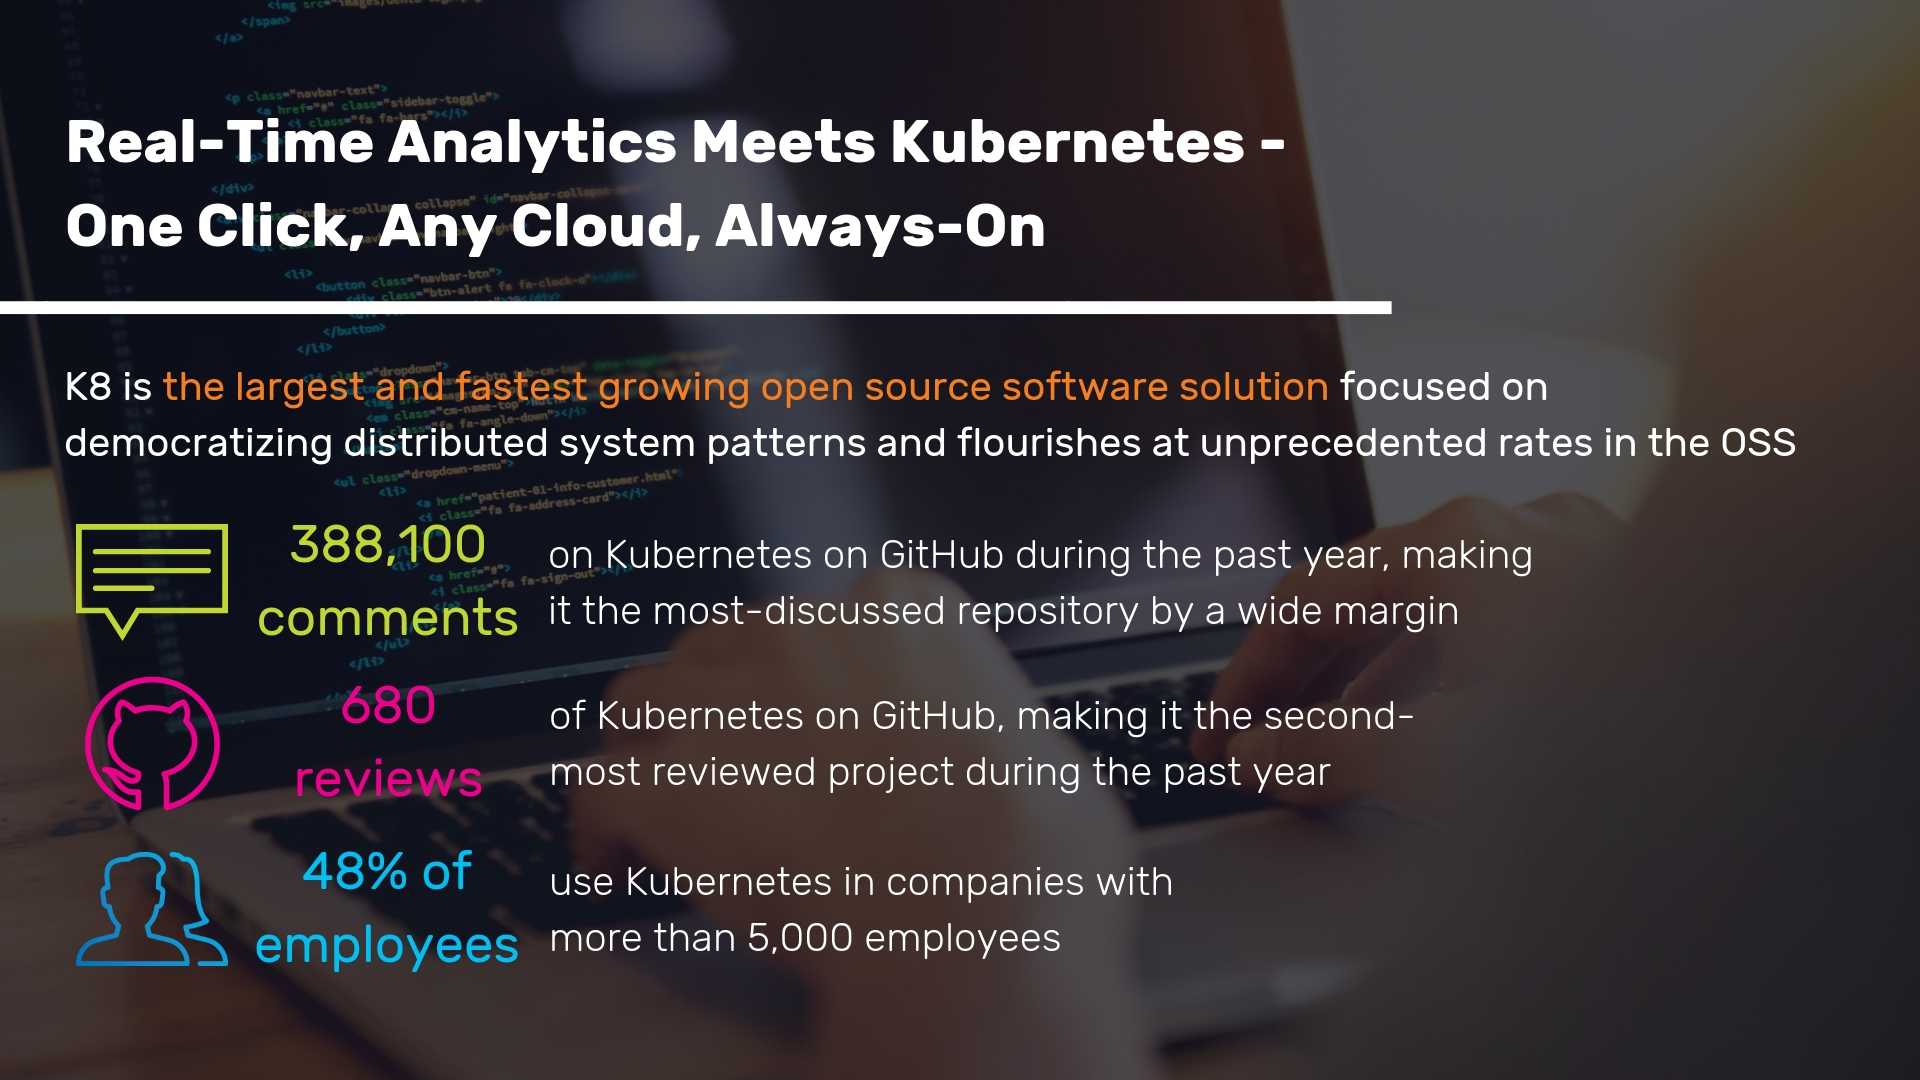 Real-Time Analytics Meets Kubernetes - One Click, Any Cloud